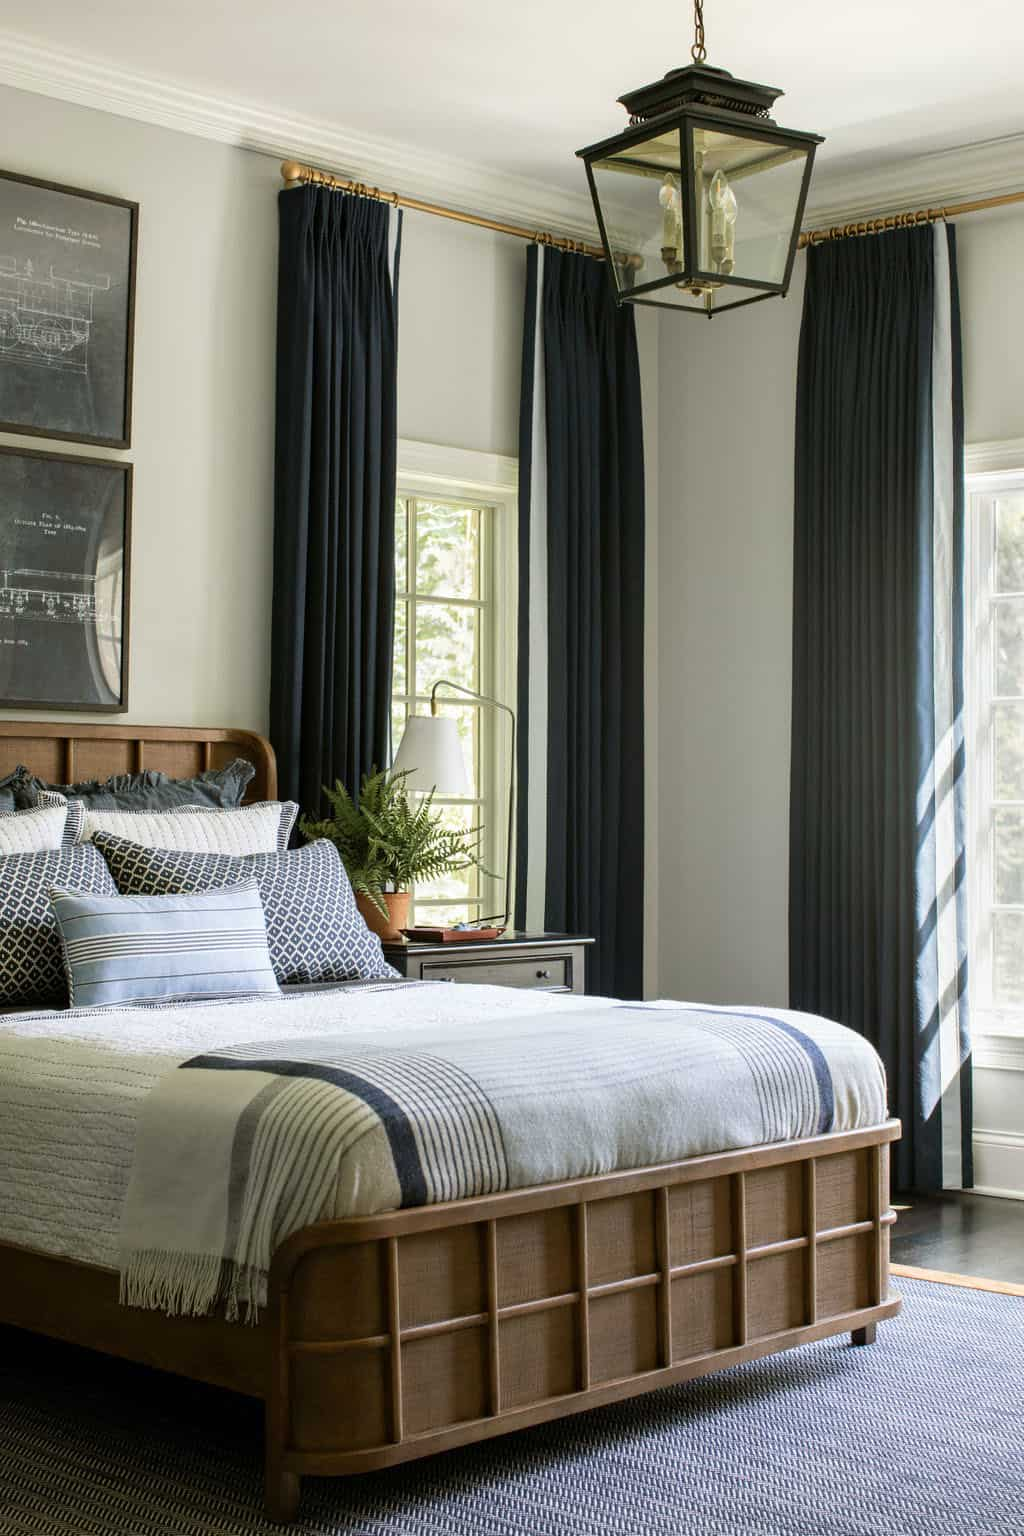 bedroom-with-sophisticated-styling